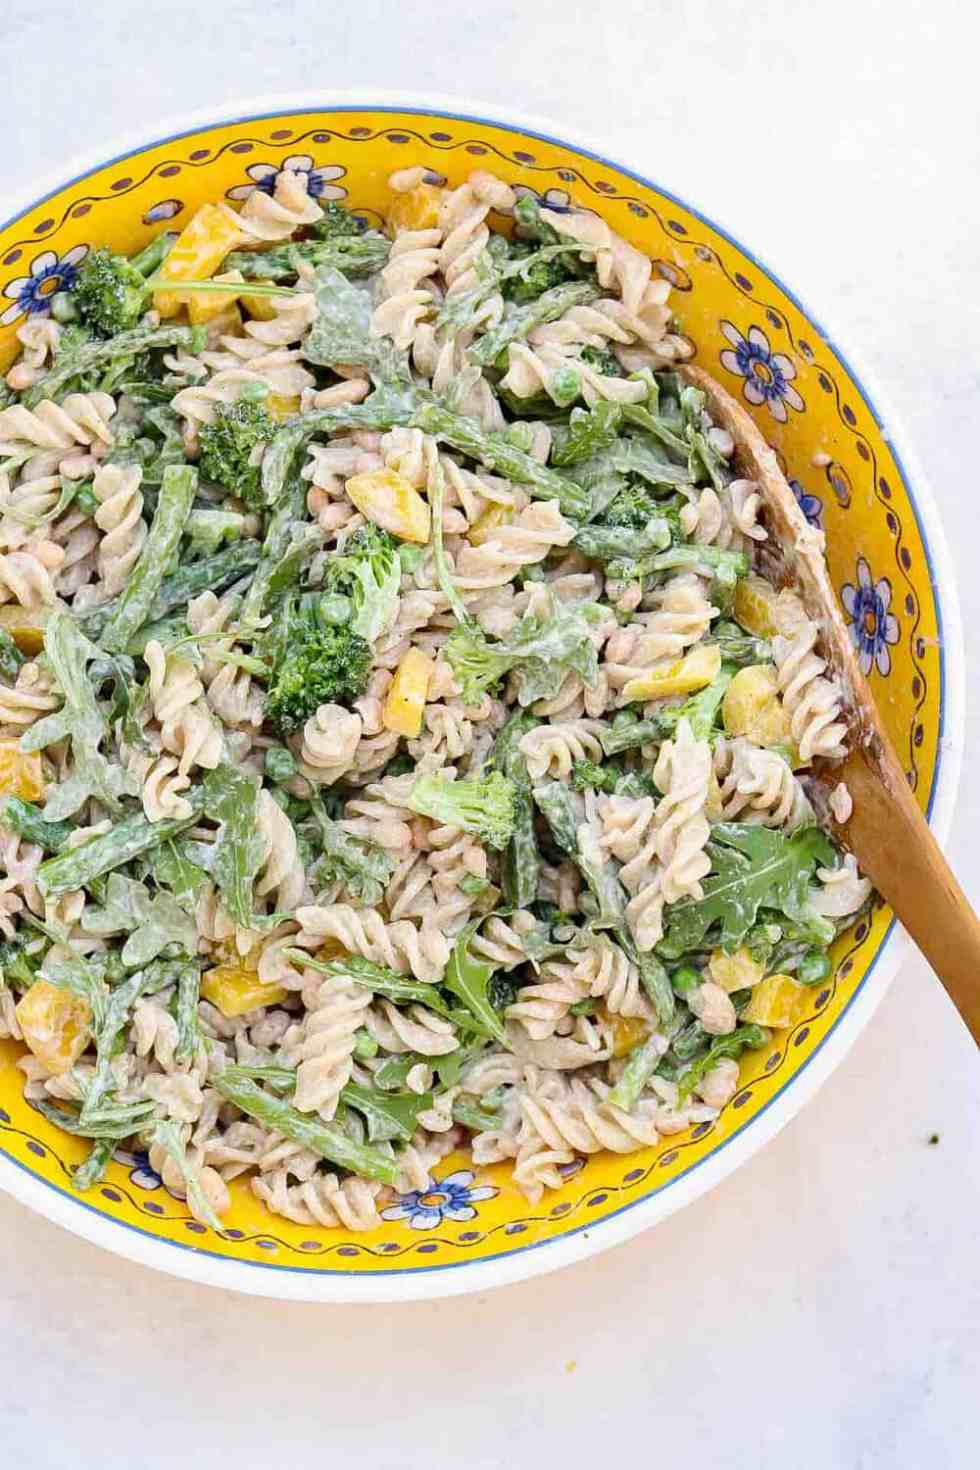 Large yellow bowl filled with this creamy pasta salad with a wooden spoon.